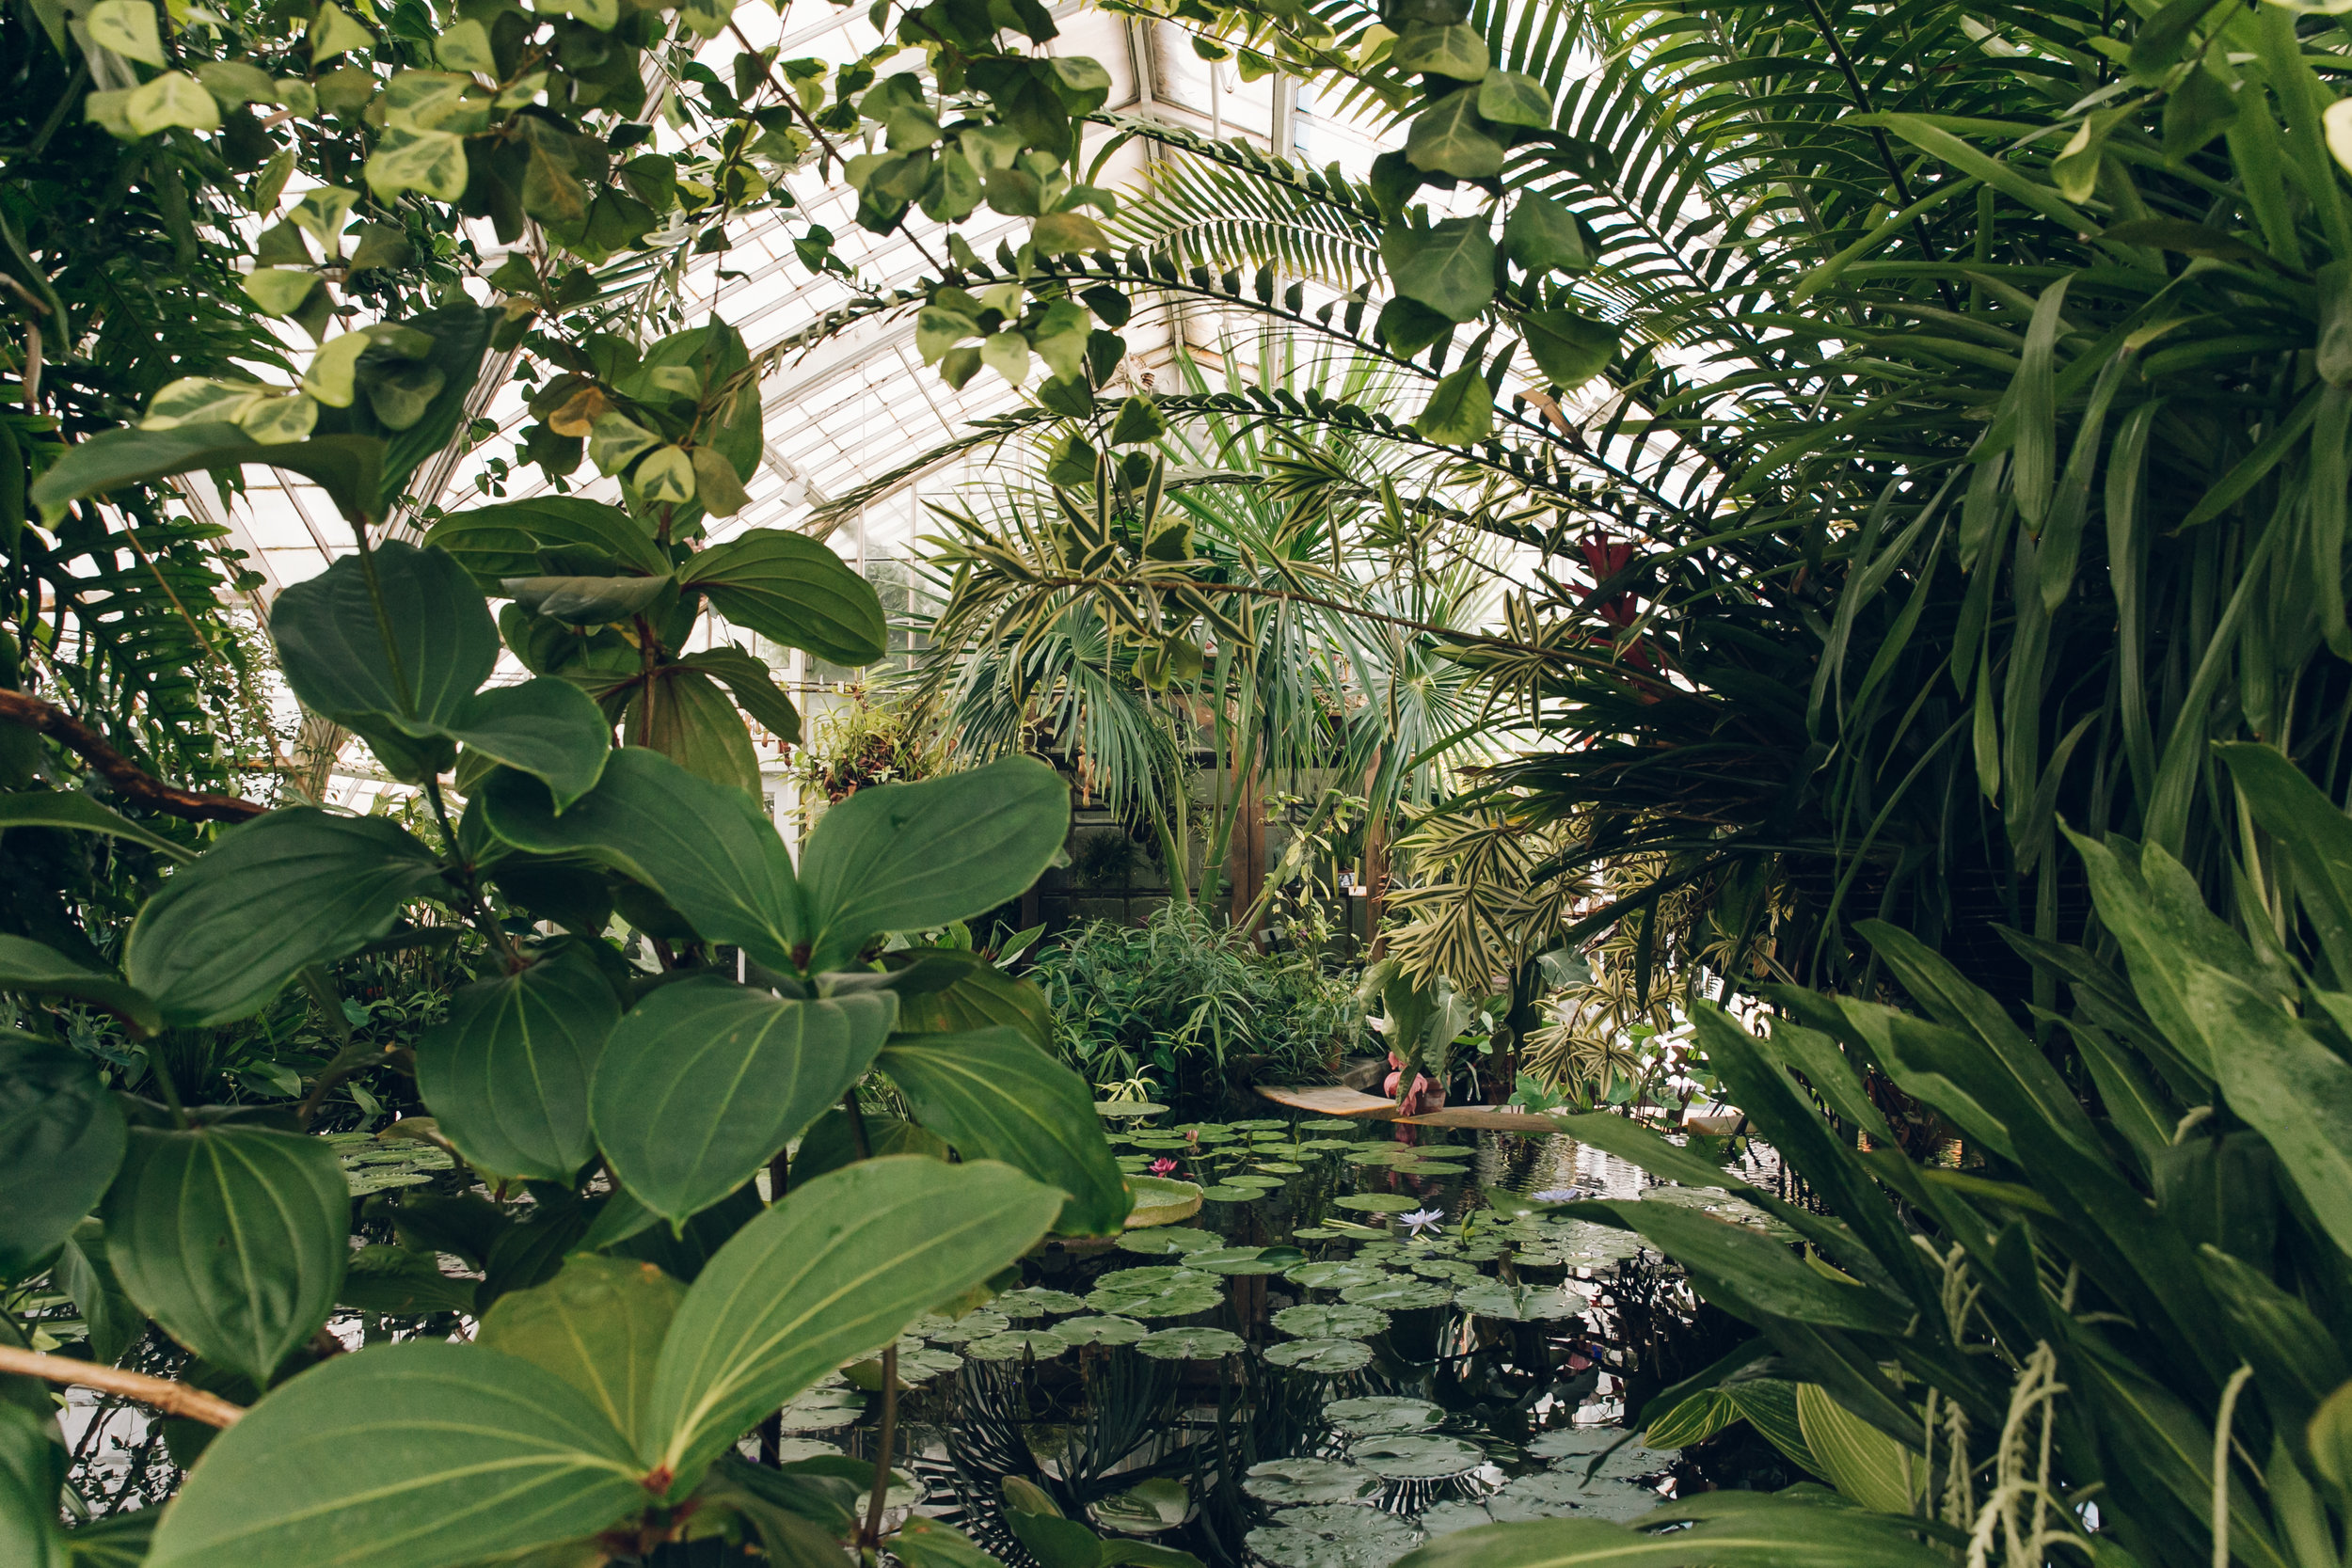 Conservatory of Flowers in San Francisco by Haarkon.